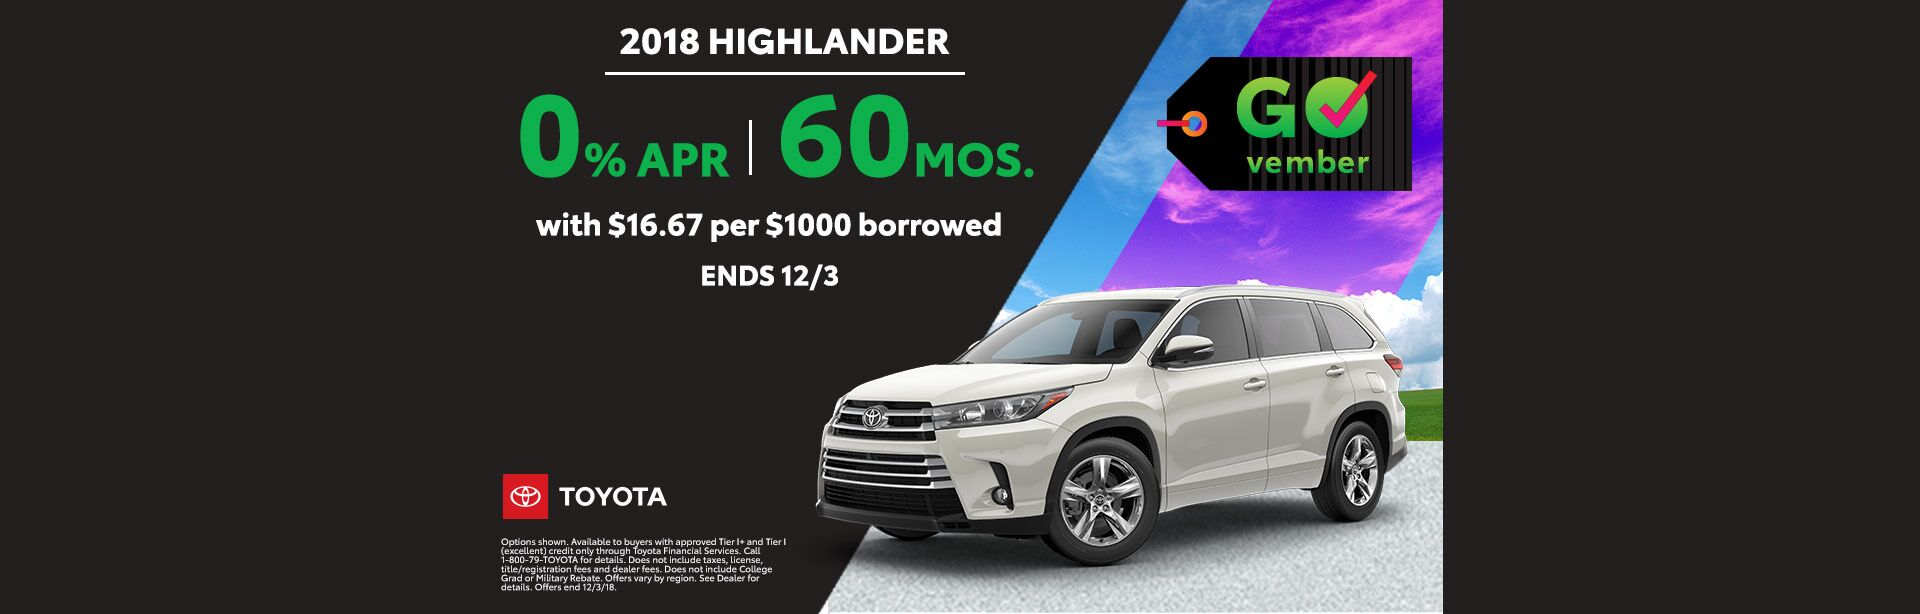 GOvember Highlander Nov 2018